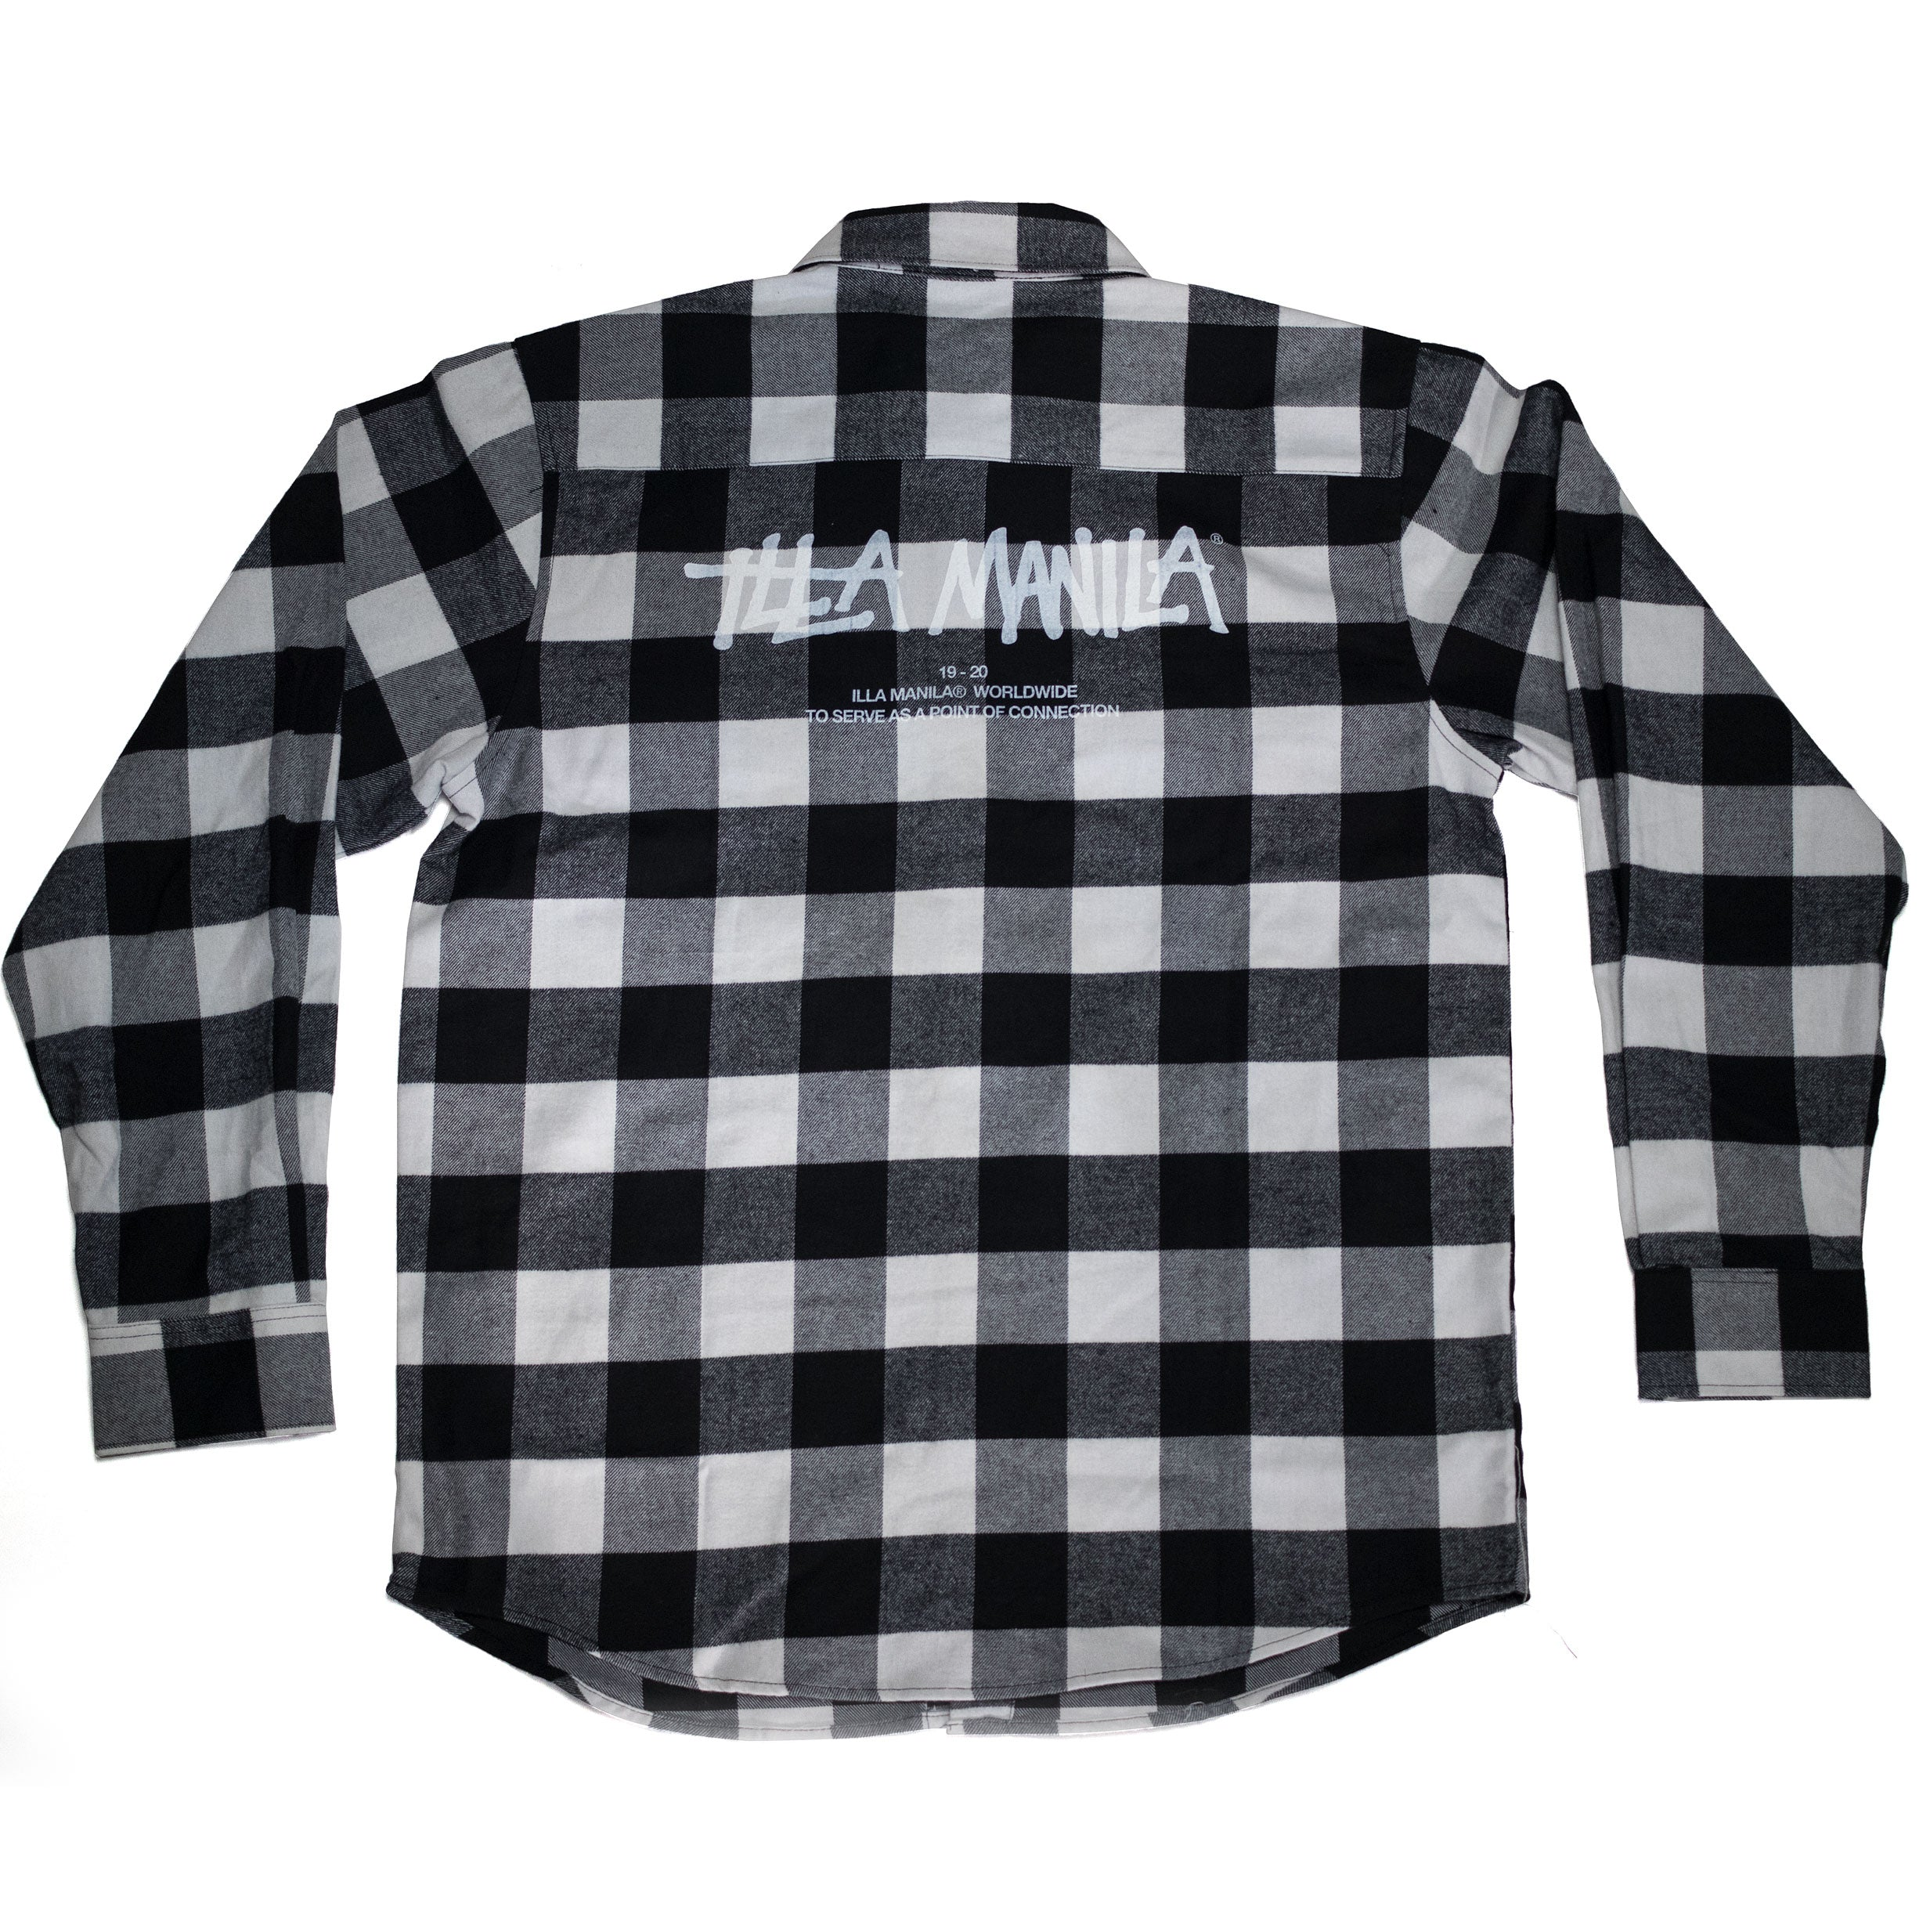 The Solidarity Flannel